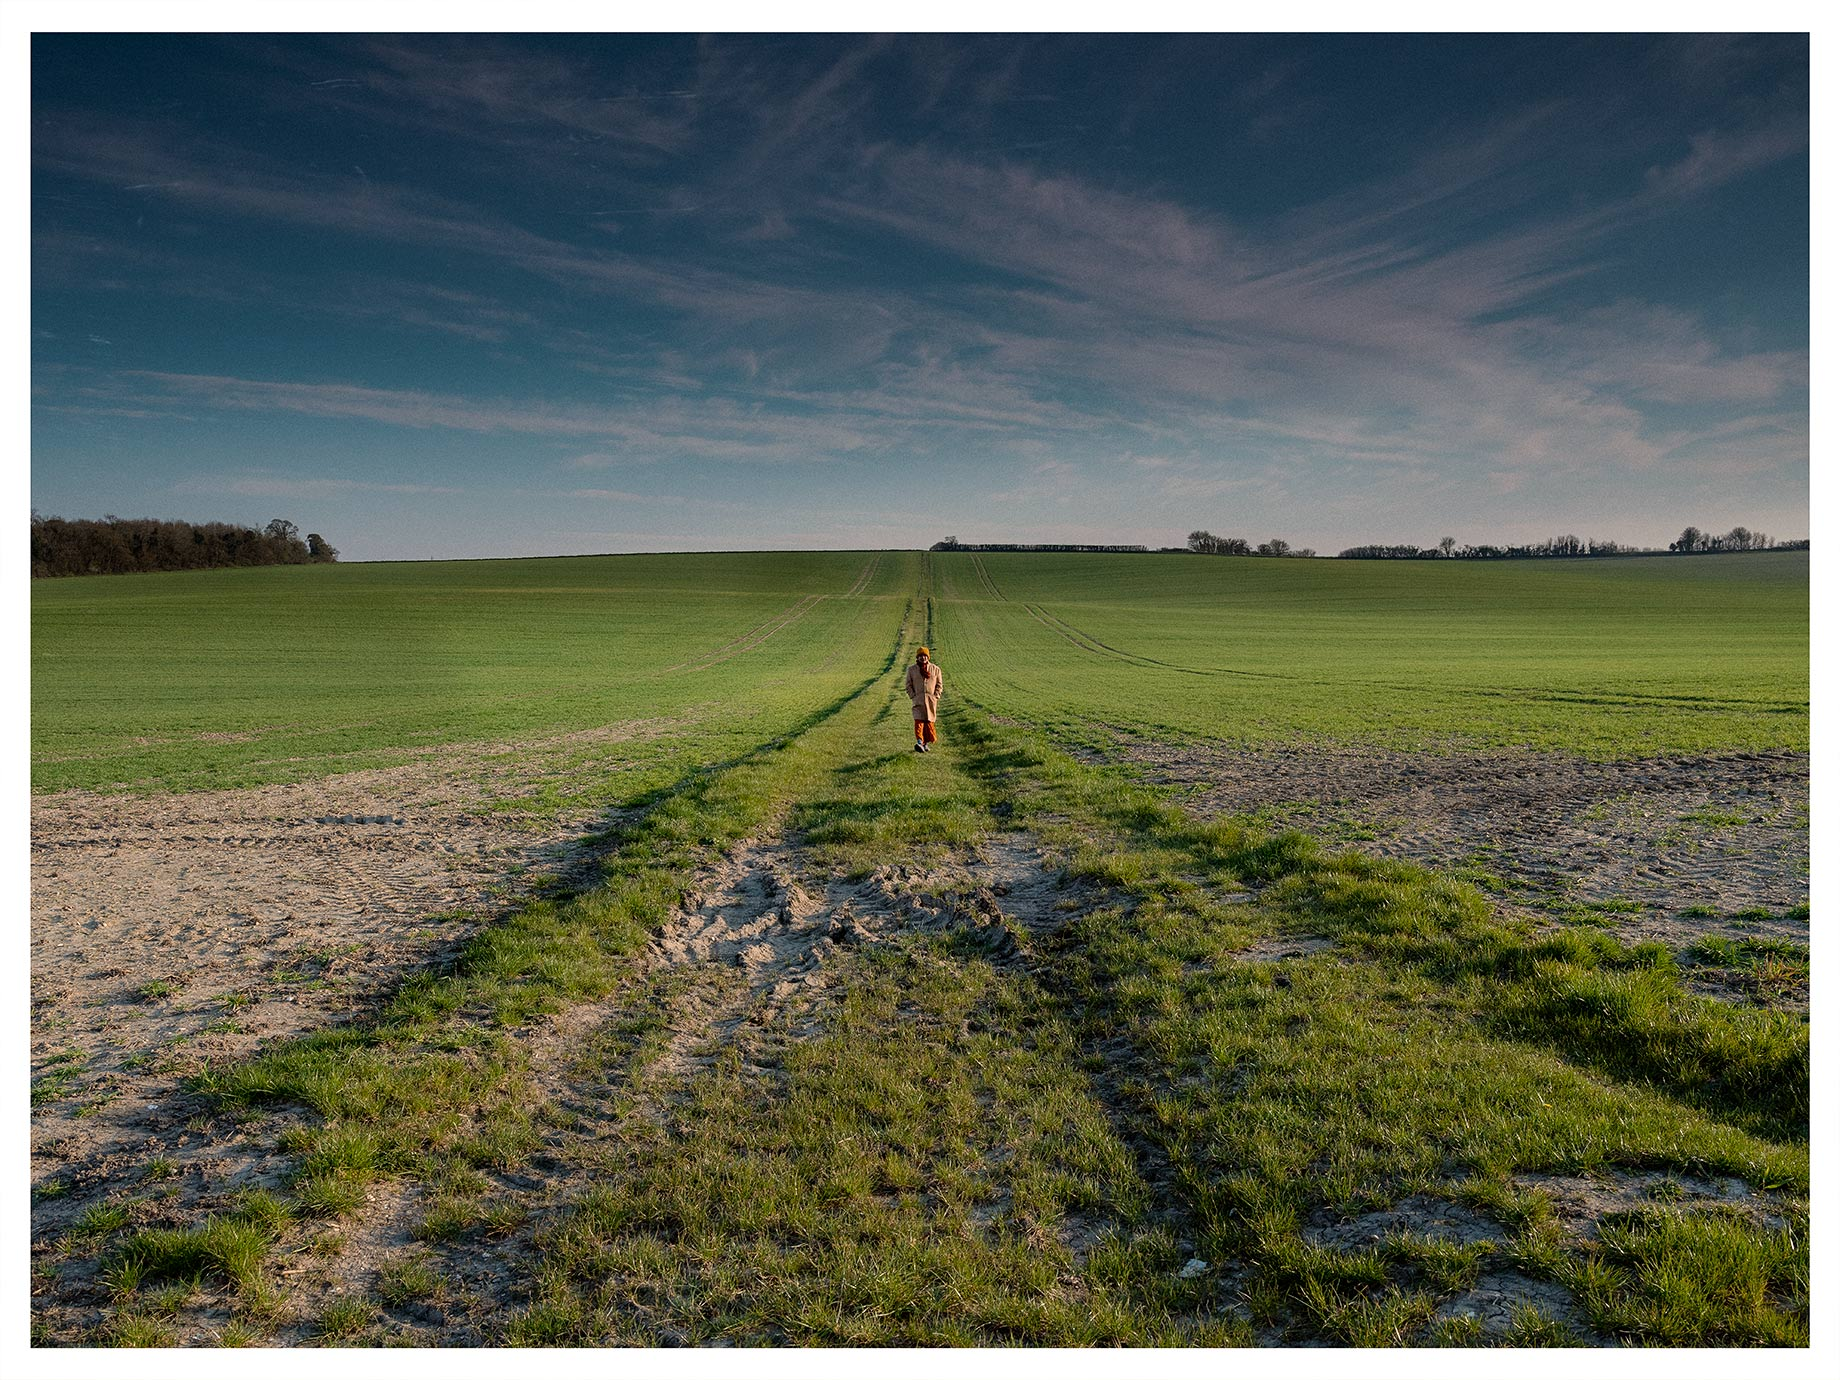 Good Boy Wolf Photographer, filmic landscape, lonely walker walking through the fields